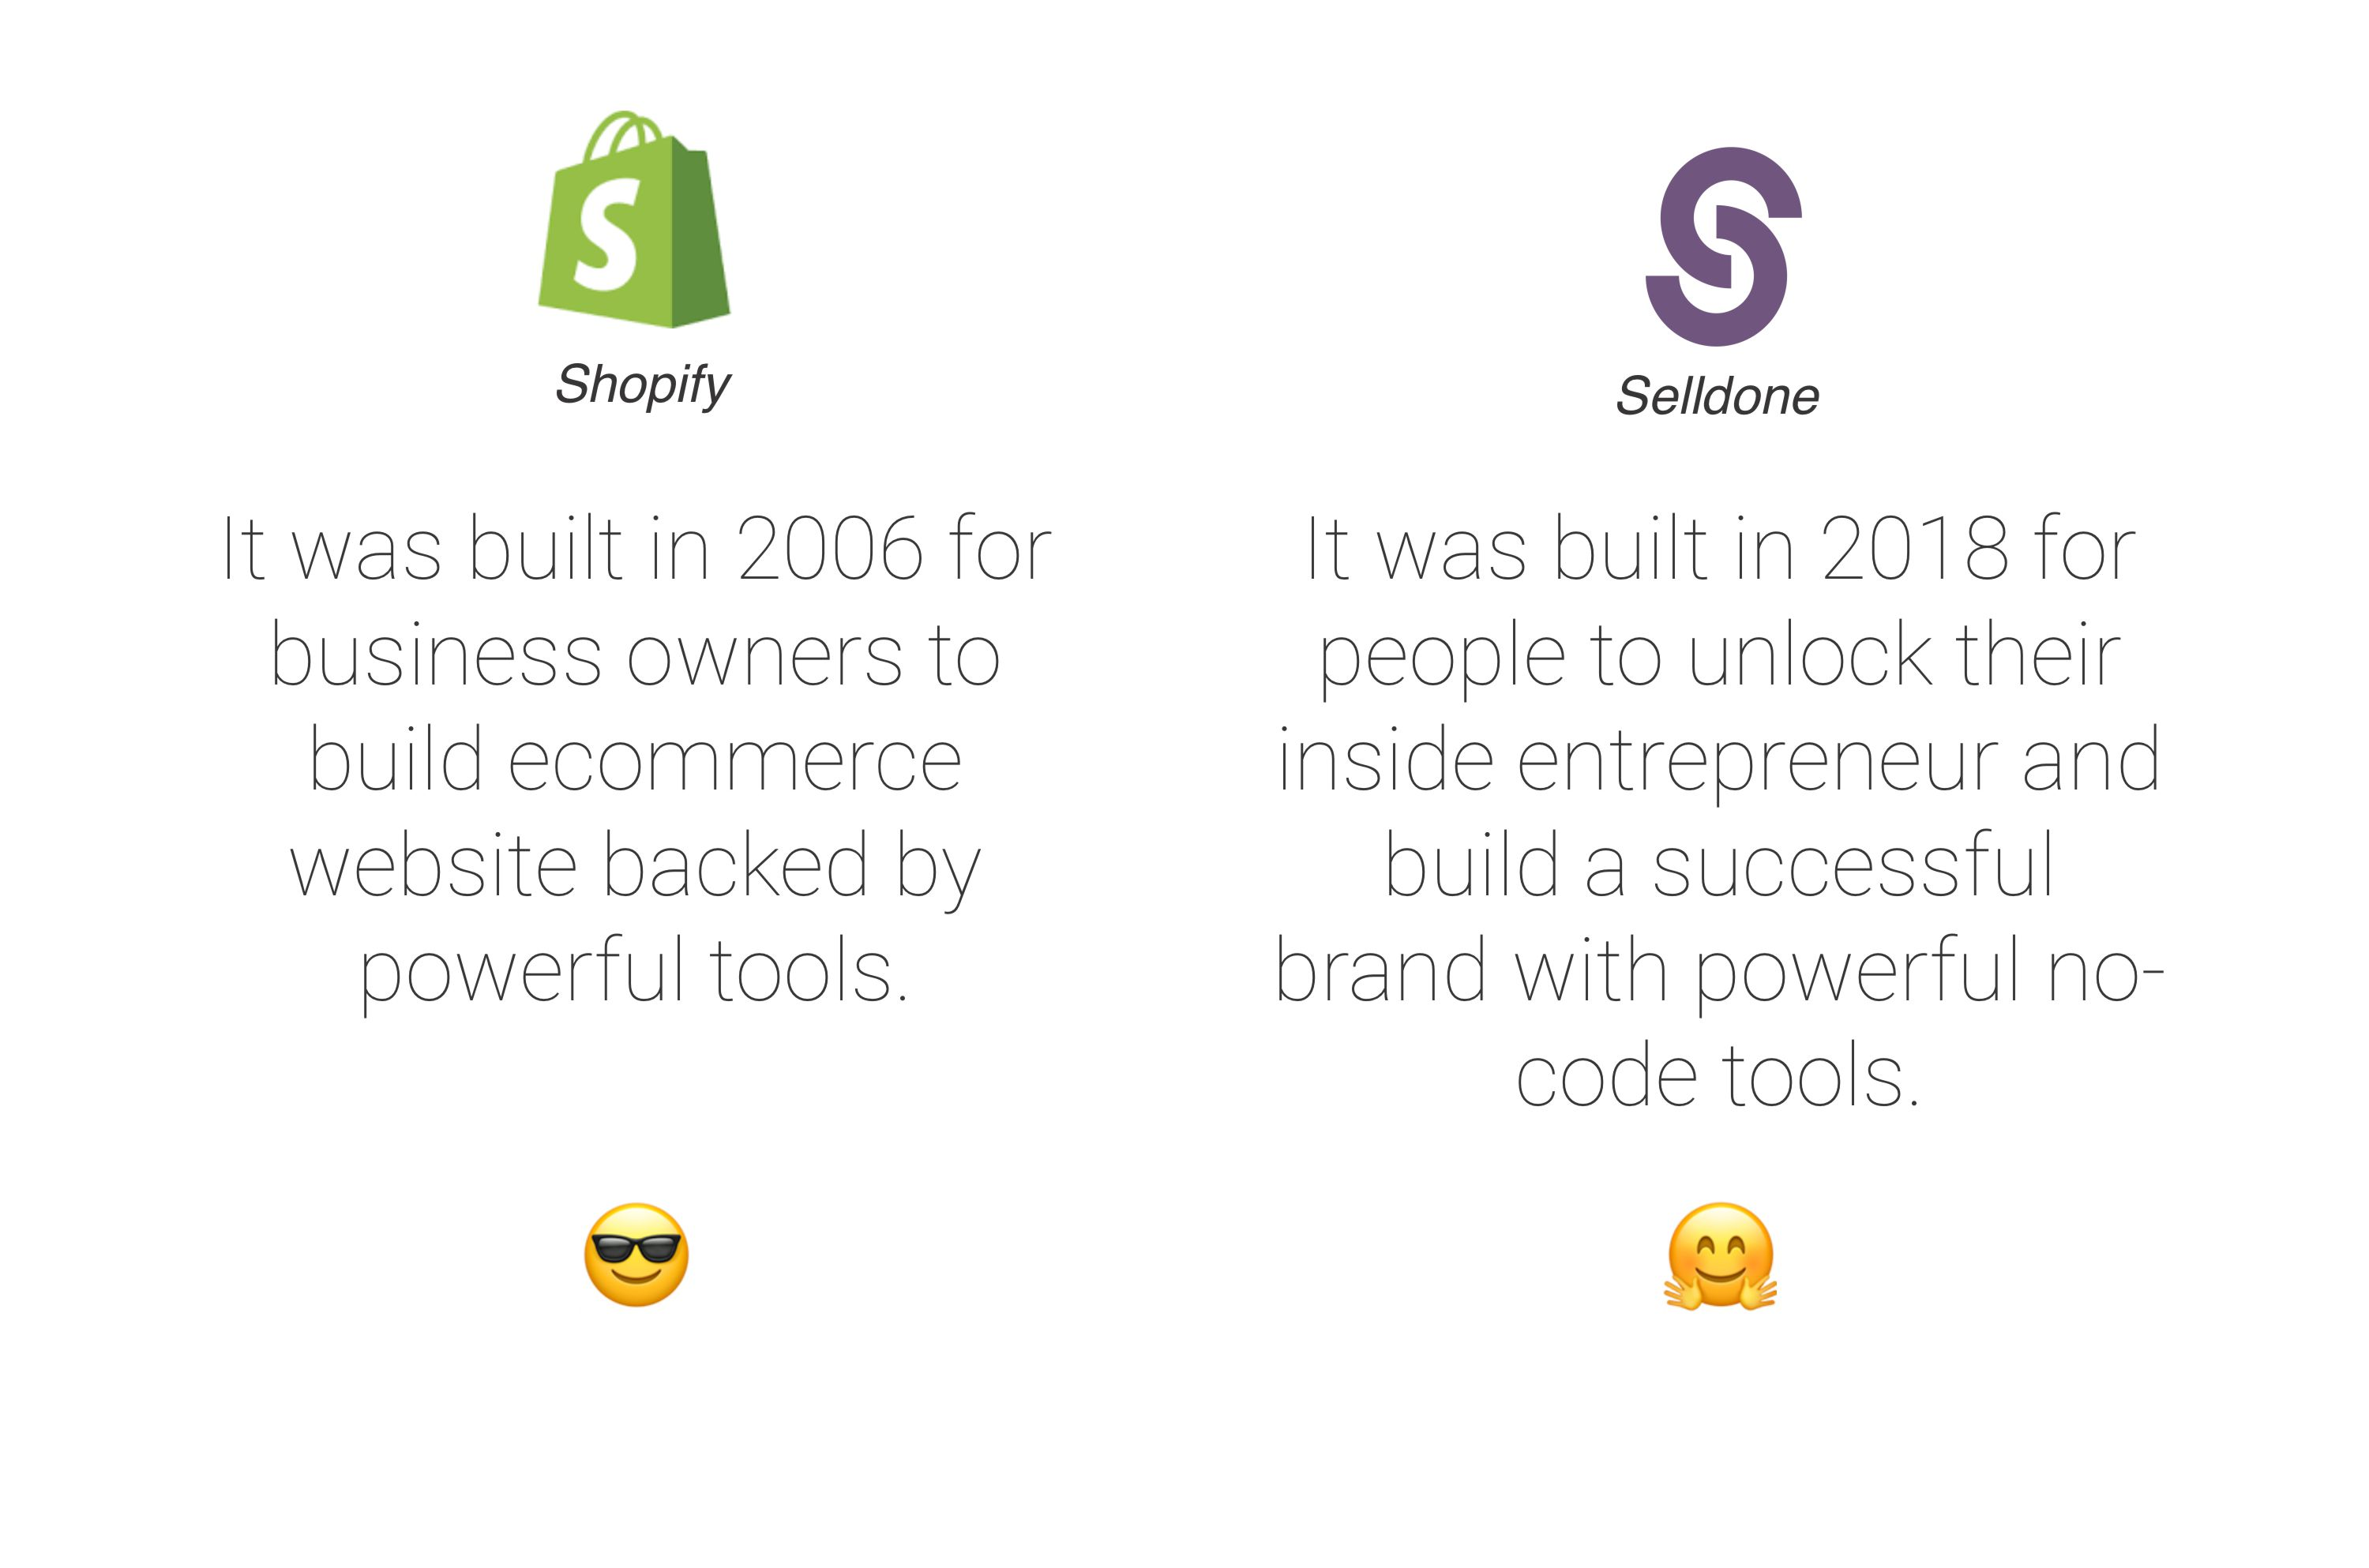 Selldone was built in 2018 for people to unlock their inside entrepreneur and build a successful brand with powerful no-code tools.Shopify was built in 2006 for business owners to build eCommerce websites backed by powerful tools.